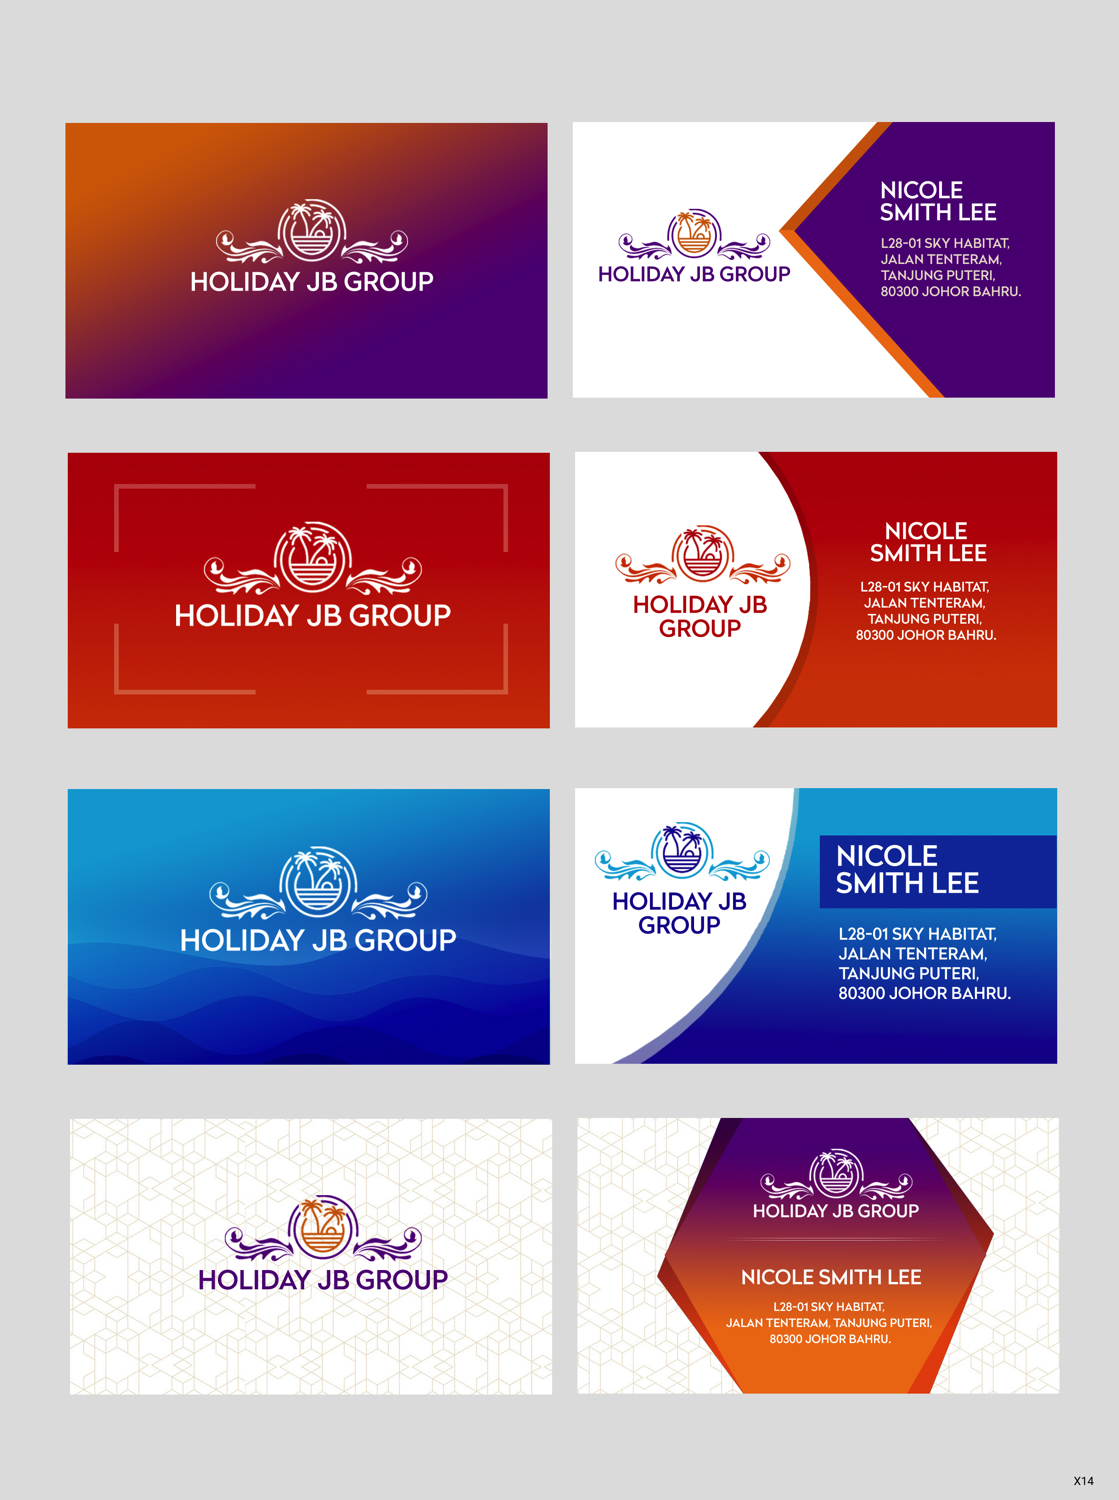 Bold Modern Web Design For Eyes Catching Attractive Amazing Nice Jaw Dropping For Design By Pb Design 20697590